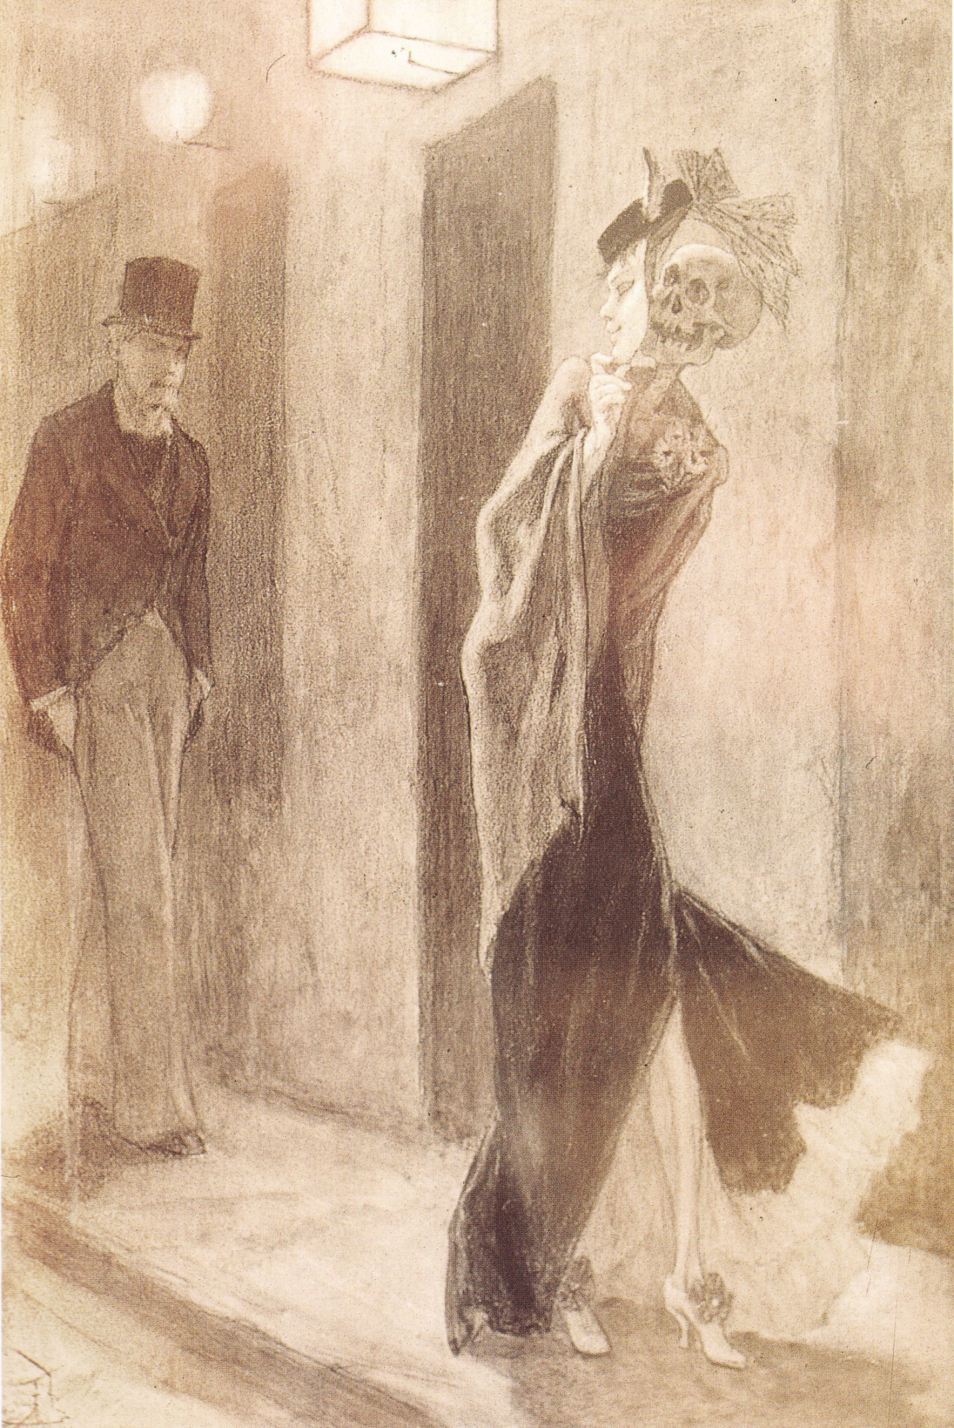 Human parody, pencil and black chalk, watercolor, by Félicien Rops, circa 1880